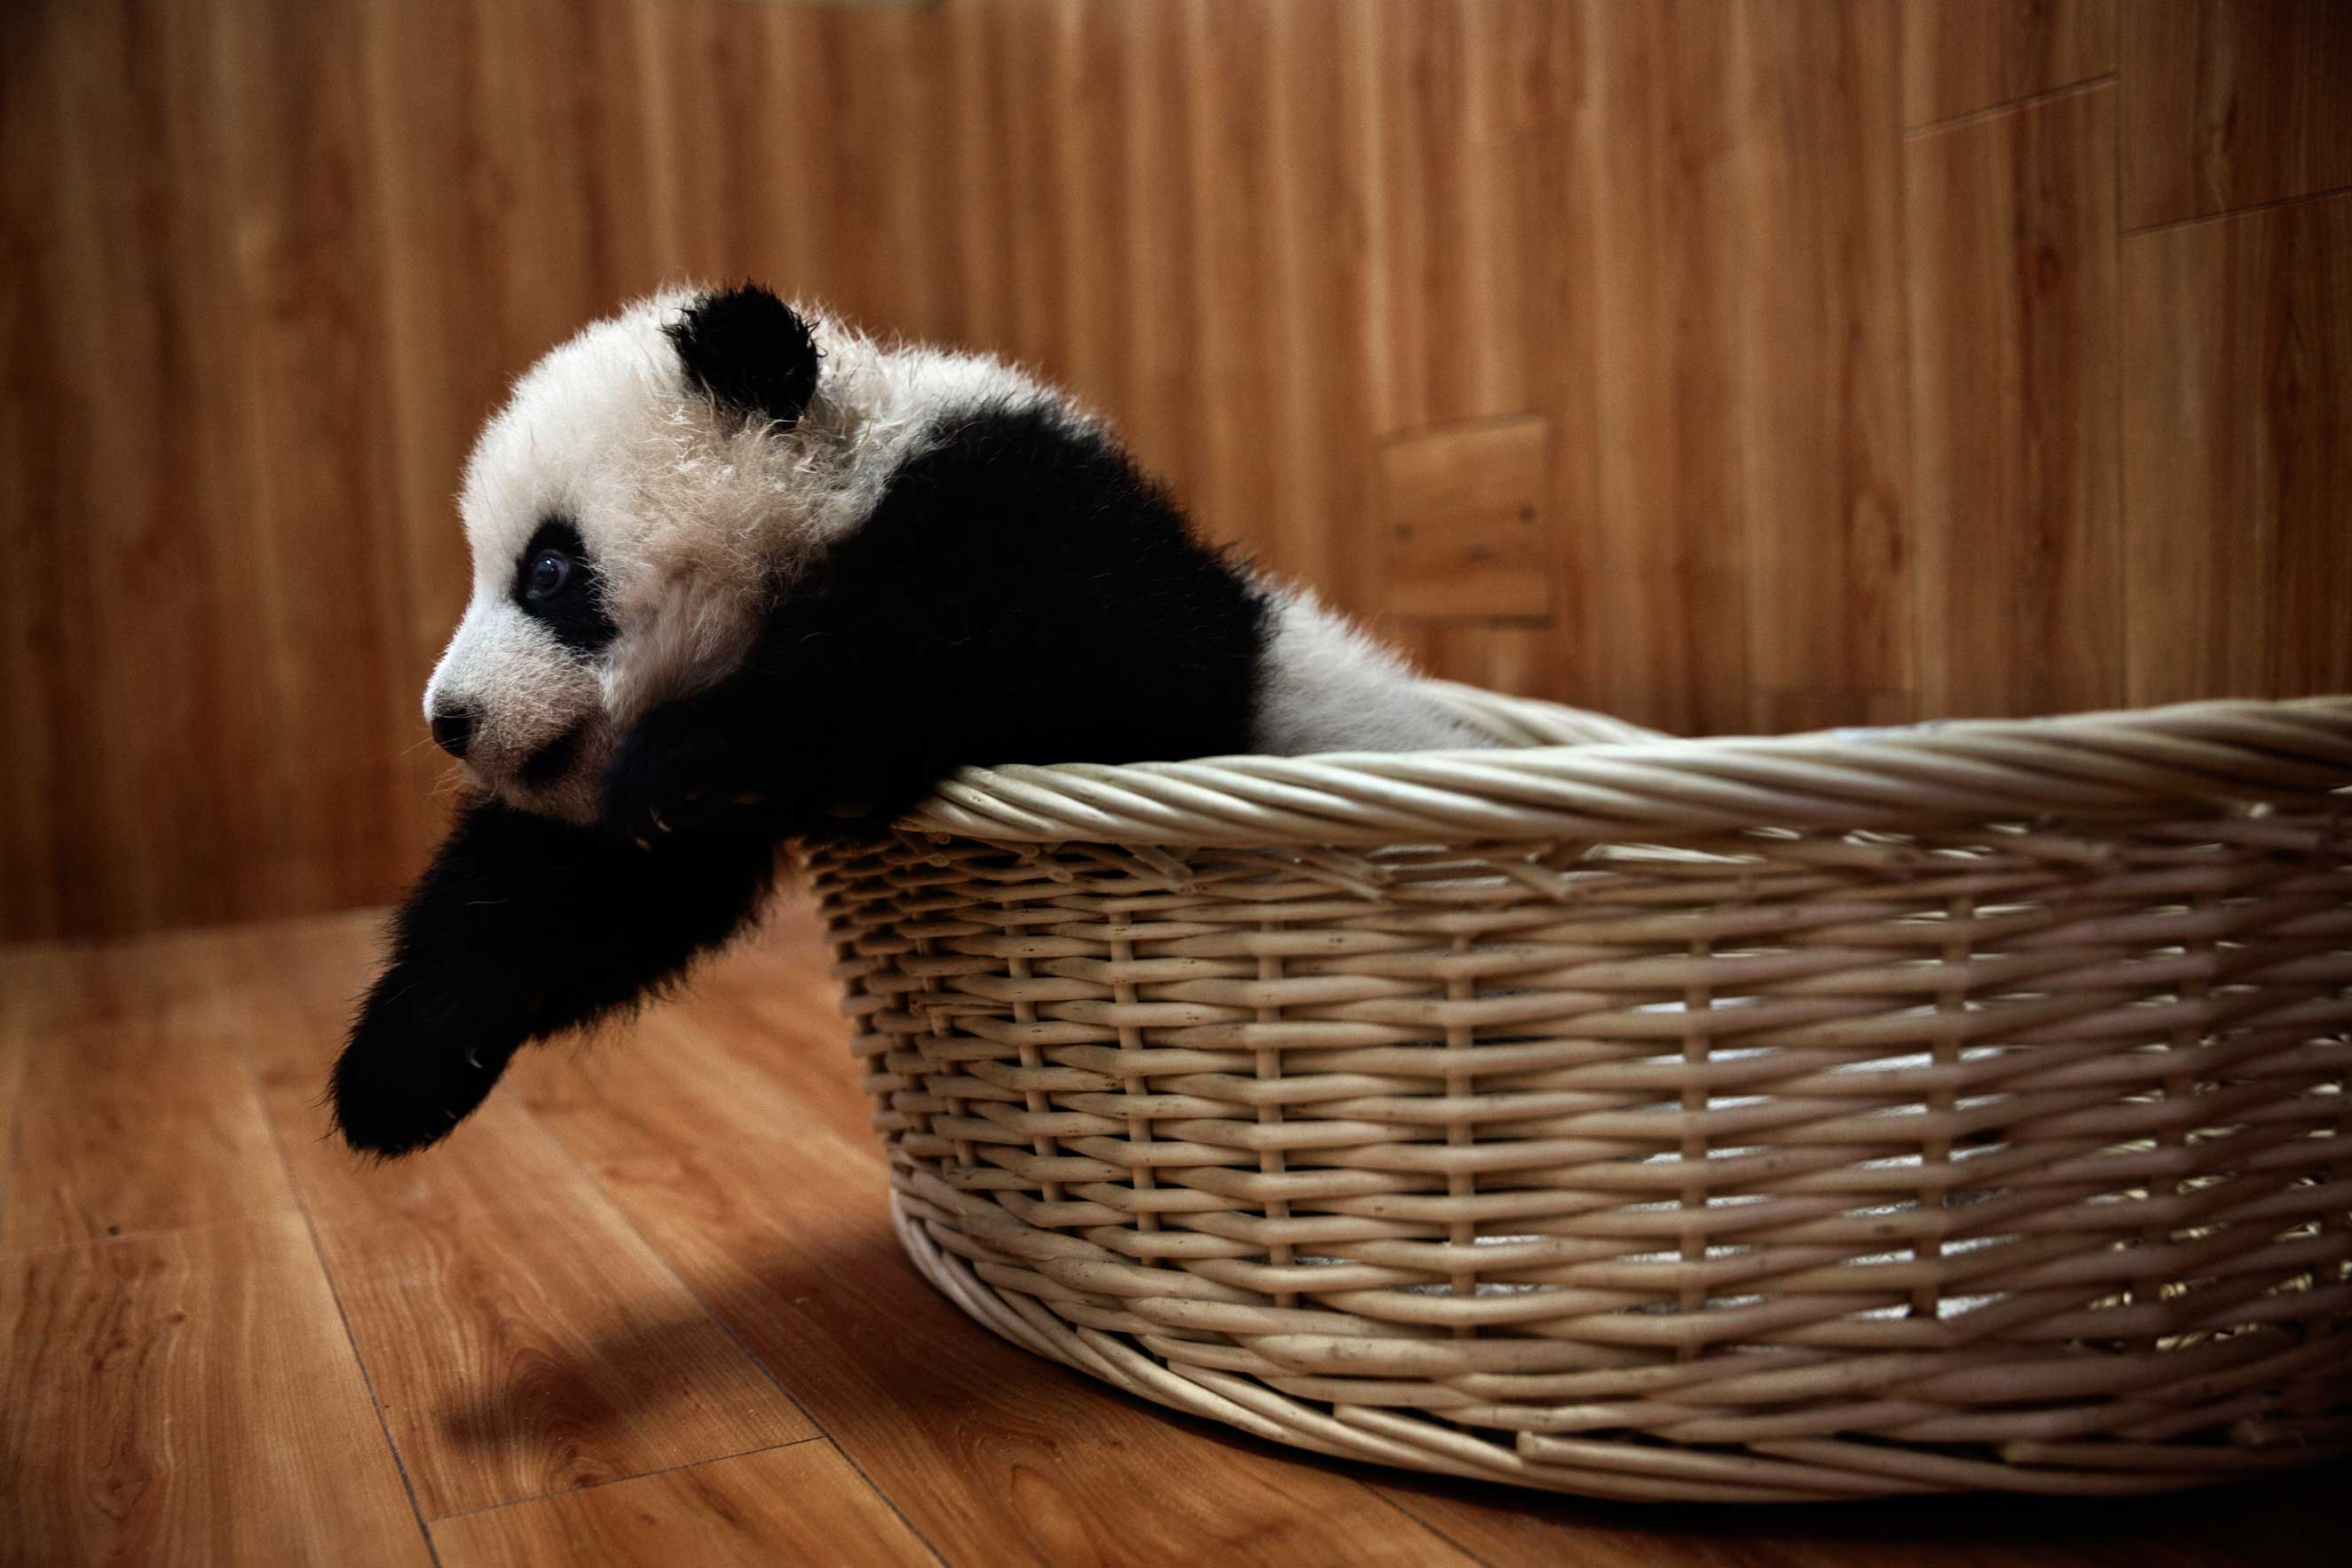 A baby panda rests after feeding time in the nursery at the Bifengxia Panda Base in Ya'an, Sichuan Province, China, Dec. 3, 2015.